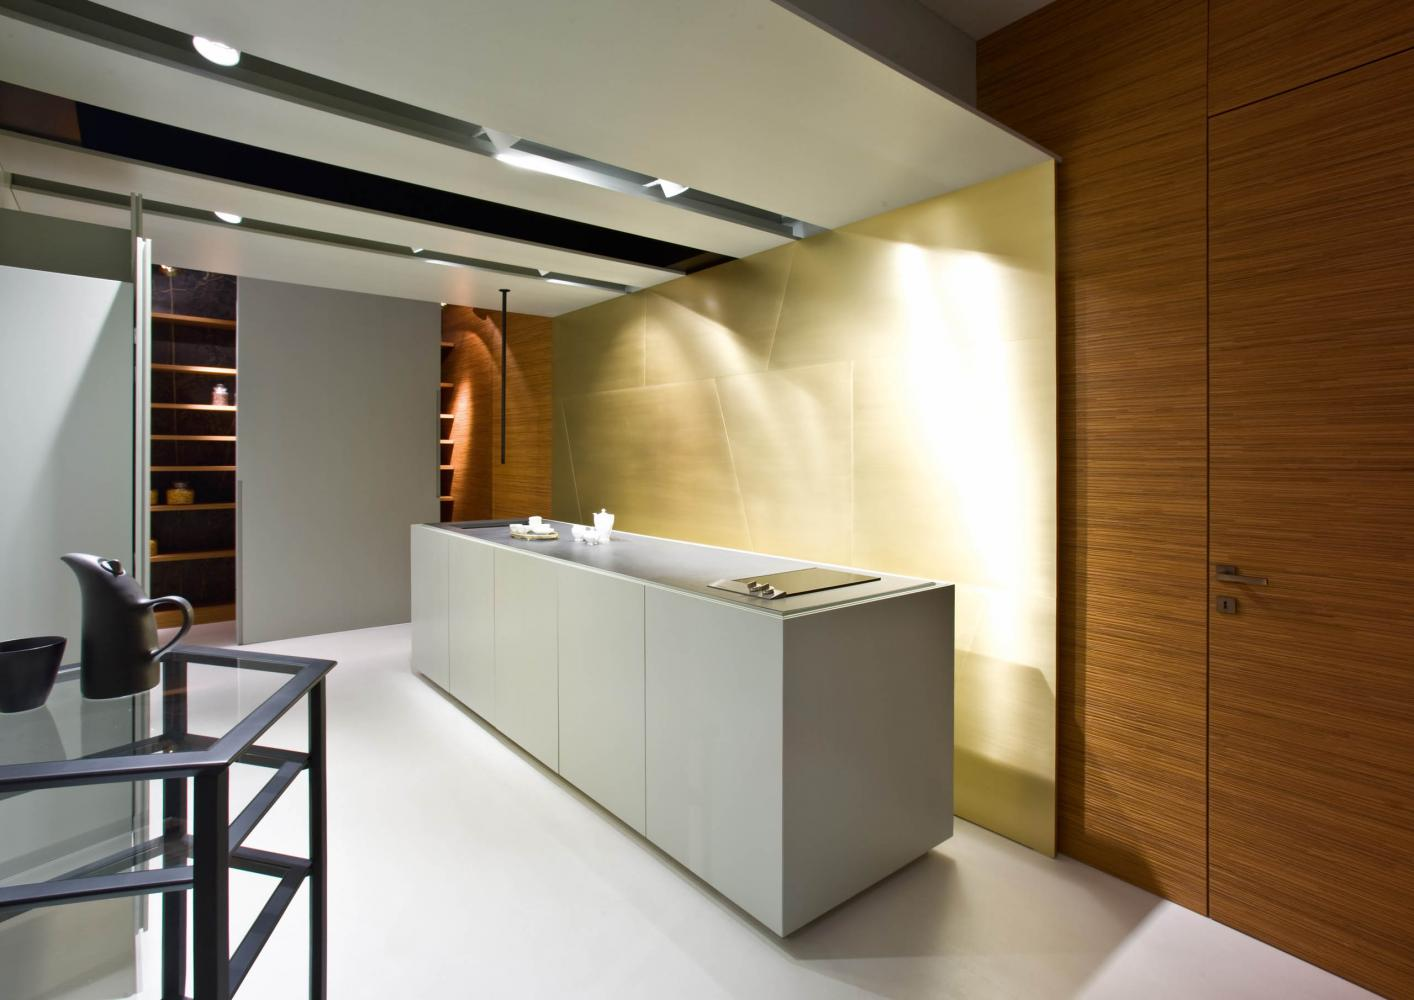 kitchen displayed at laurameroni factory showroom in alzate brianza como italy